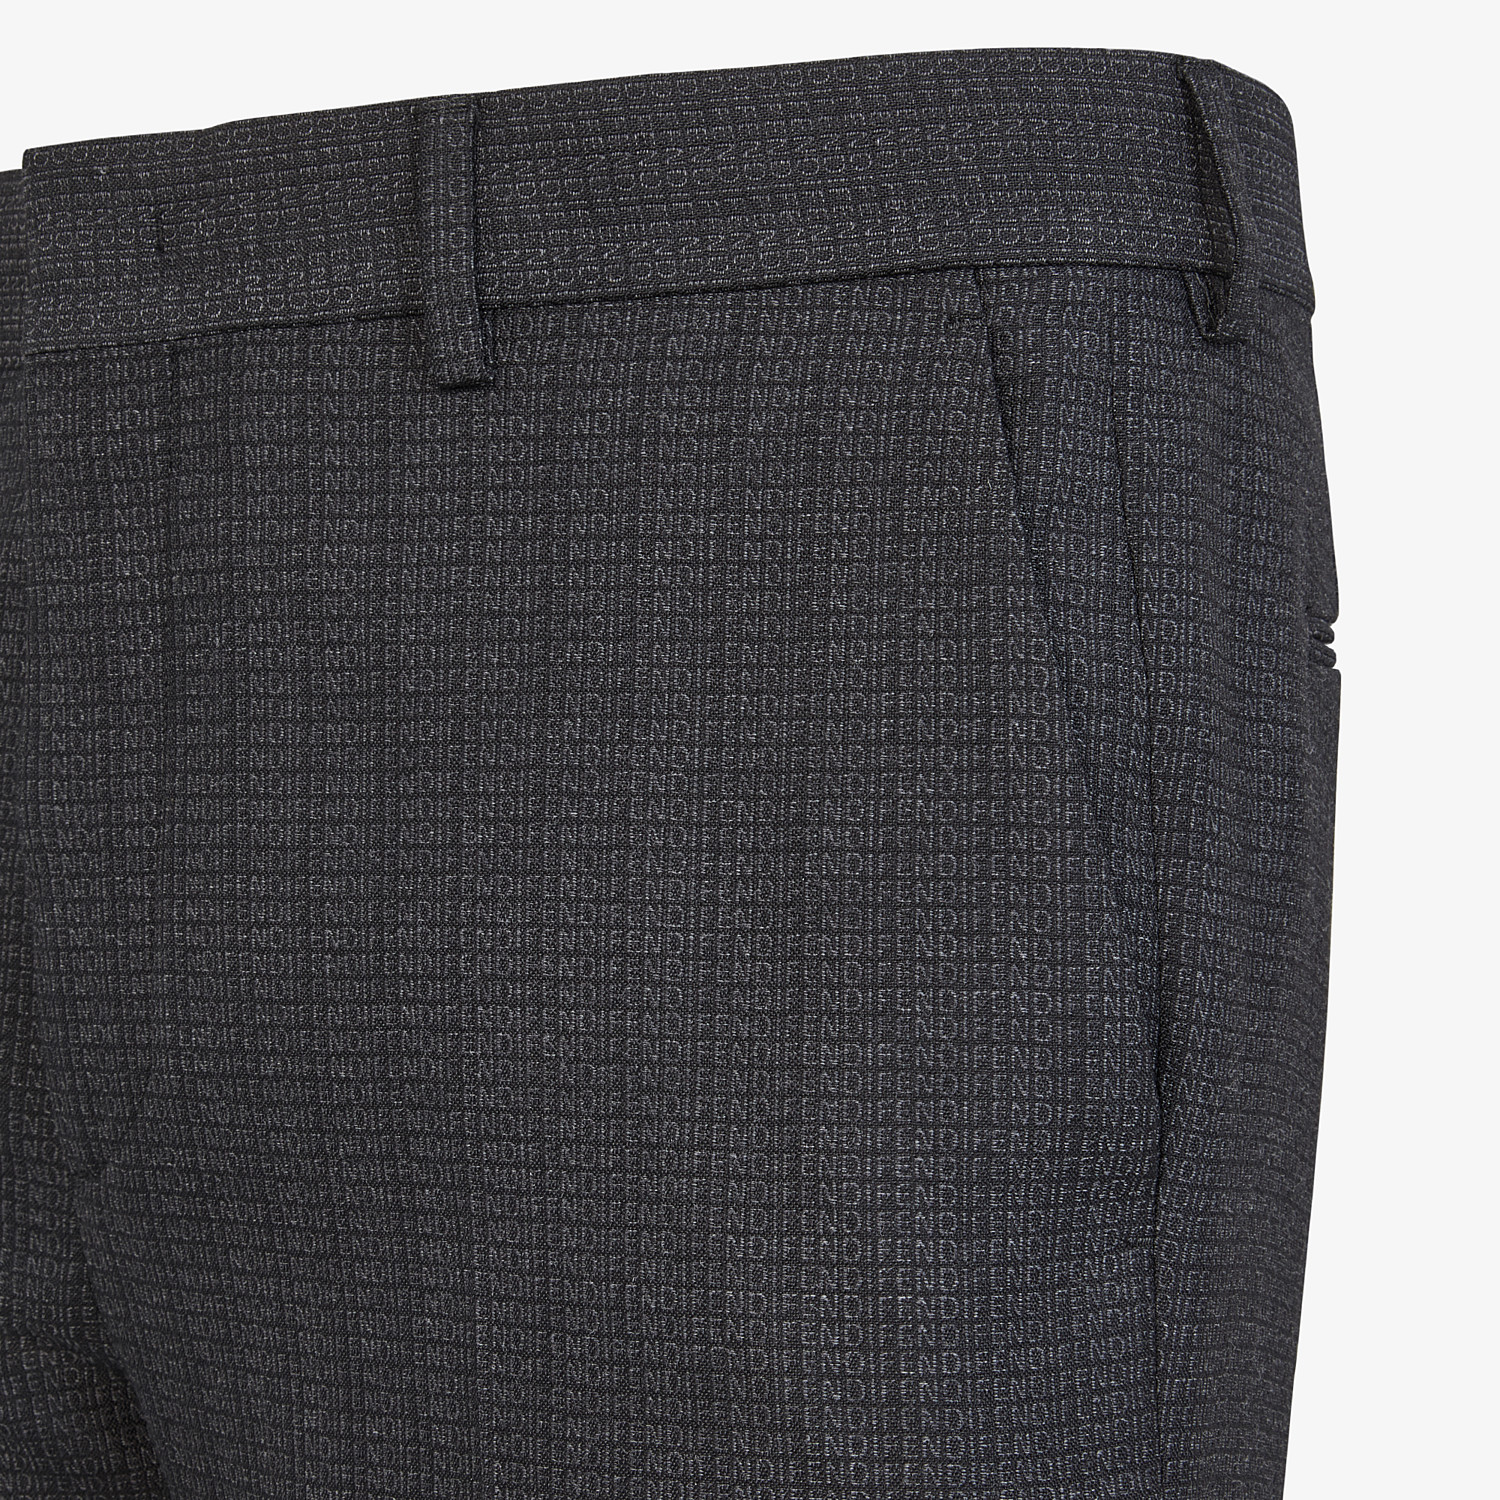 FENDI PANTS - Pants in black cotton, silk and wool - view 3 detail